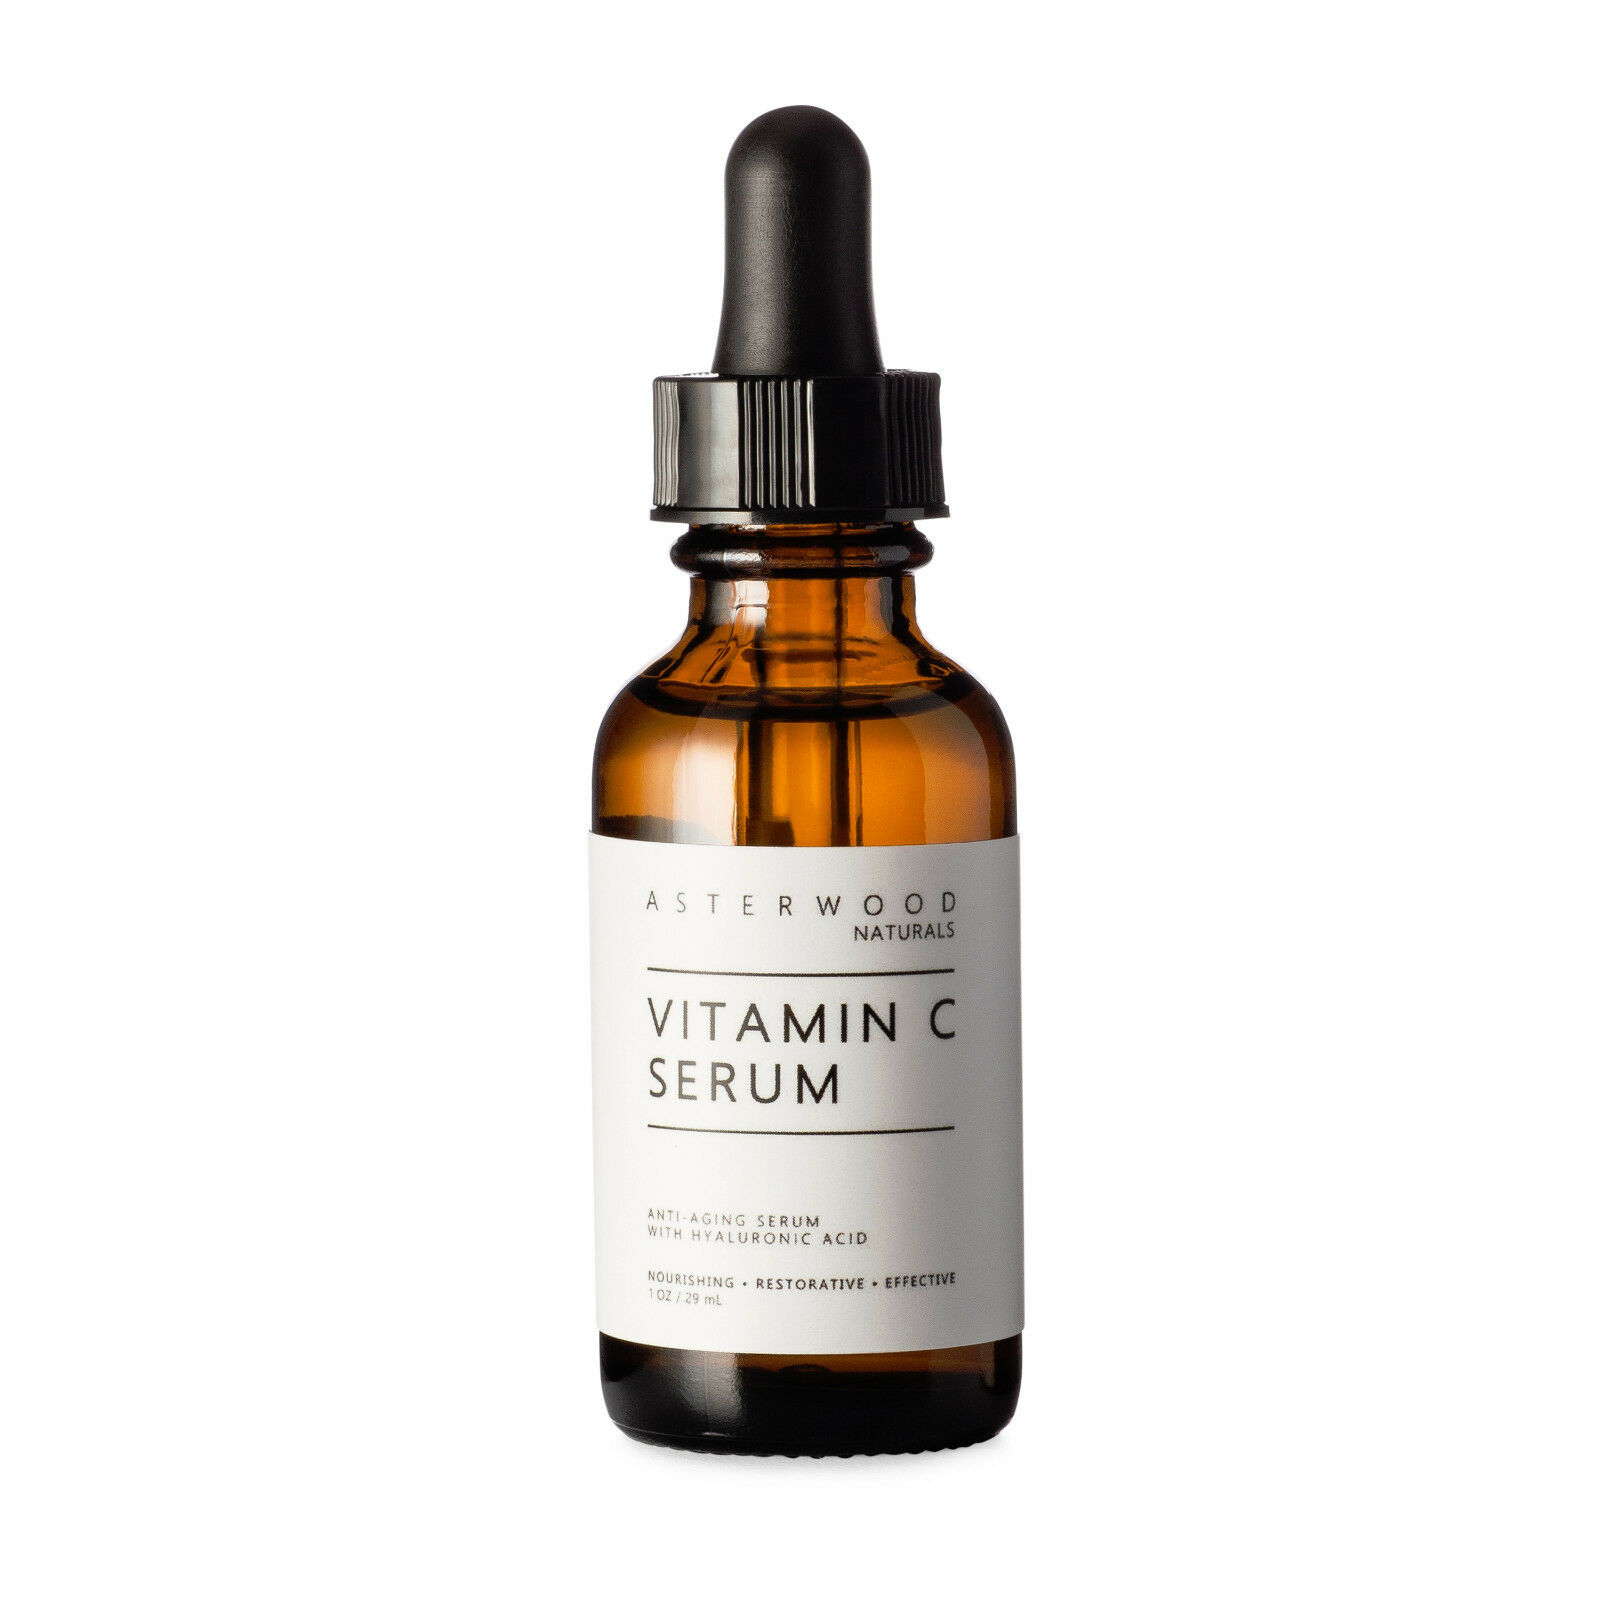 La vitamine C MAP sérum w - Acide Hyaluronique organique Visage Asterwood Naturals 1 oz